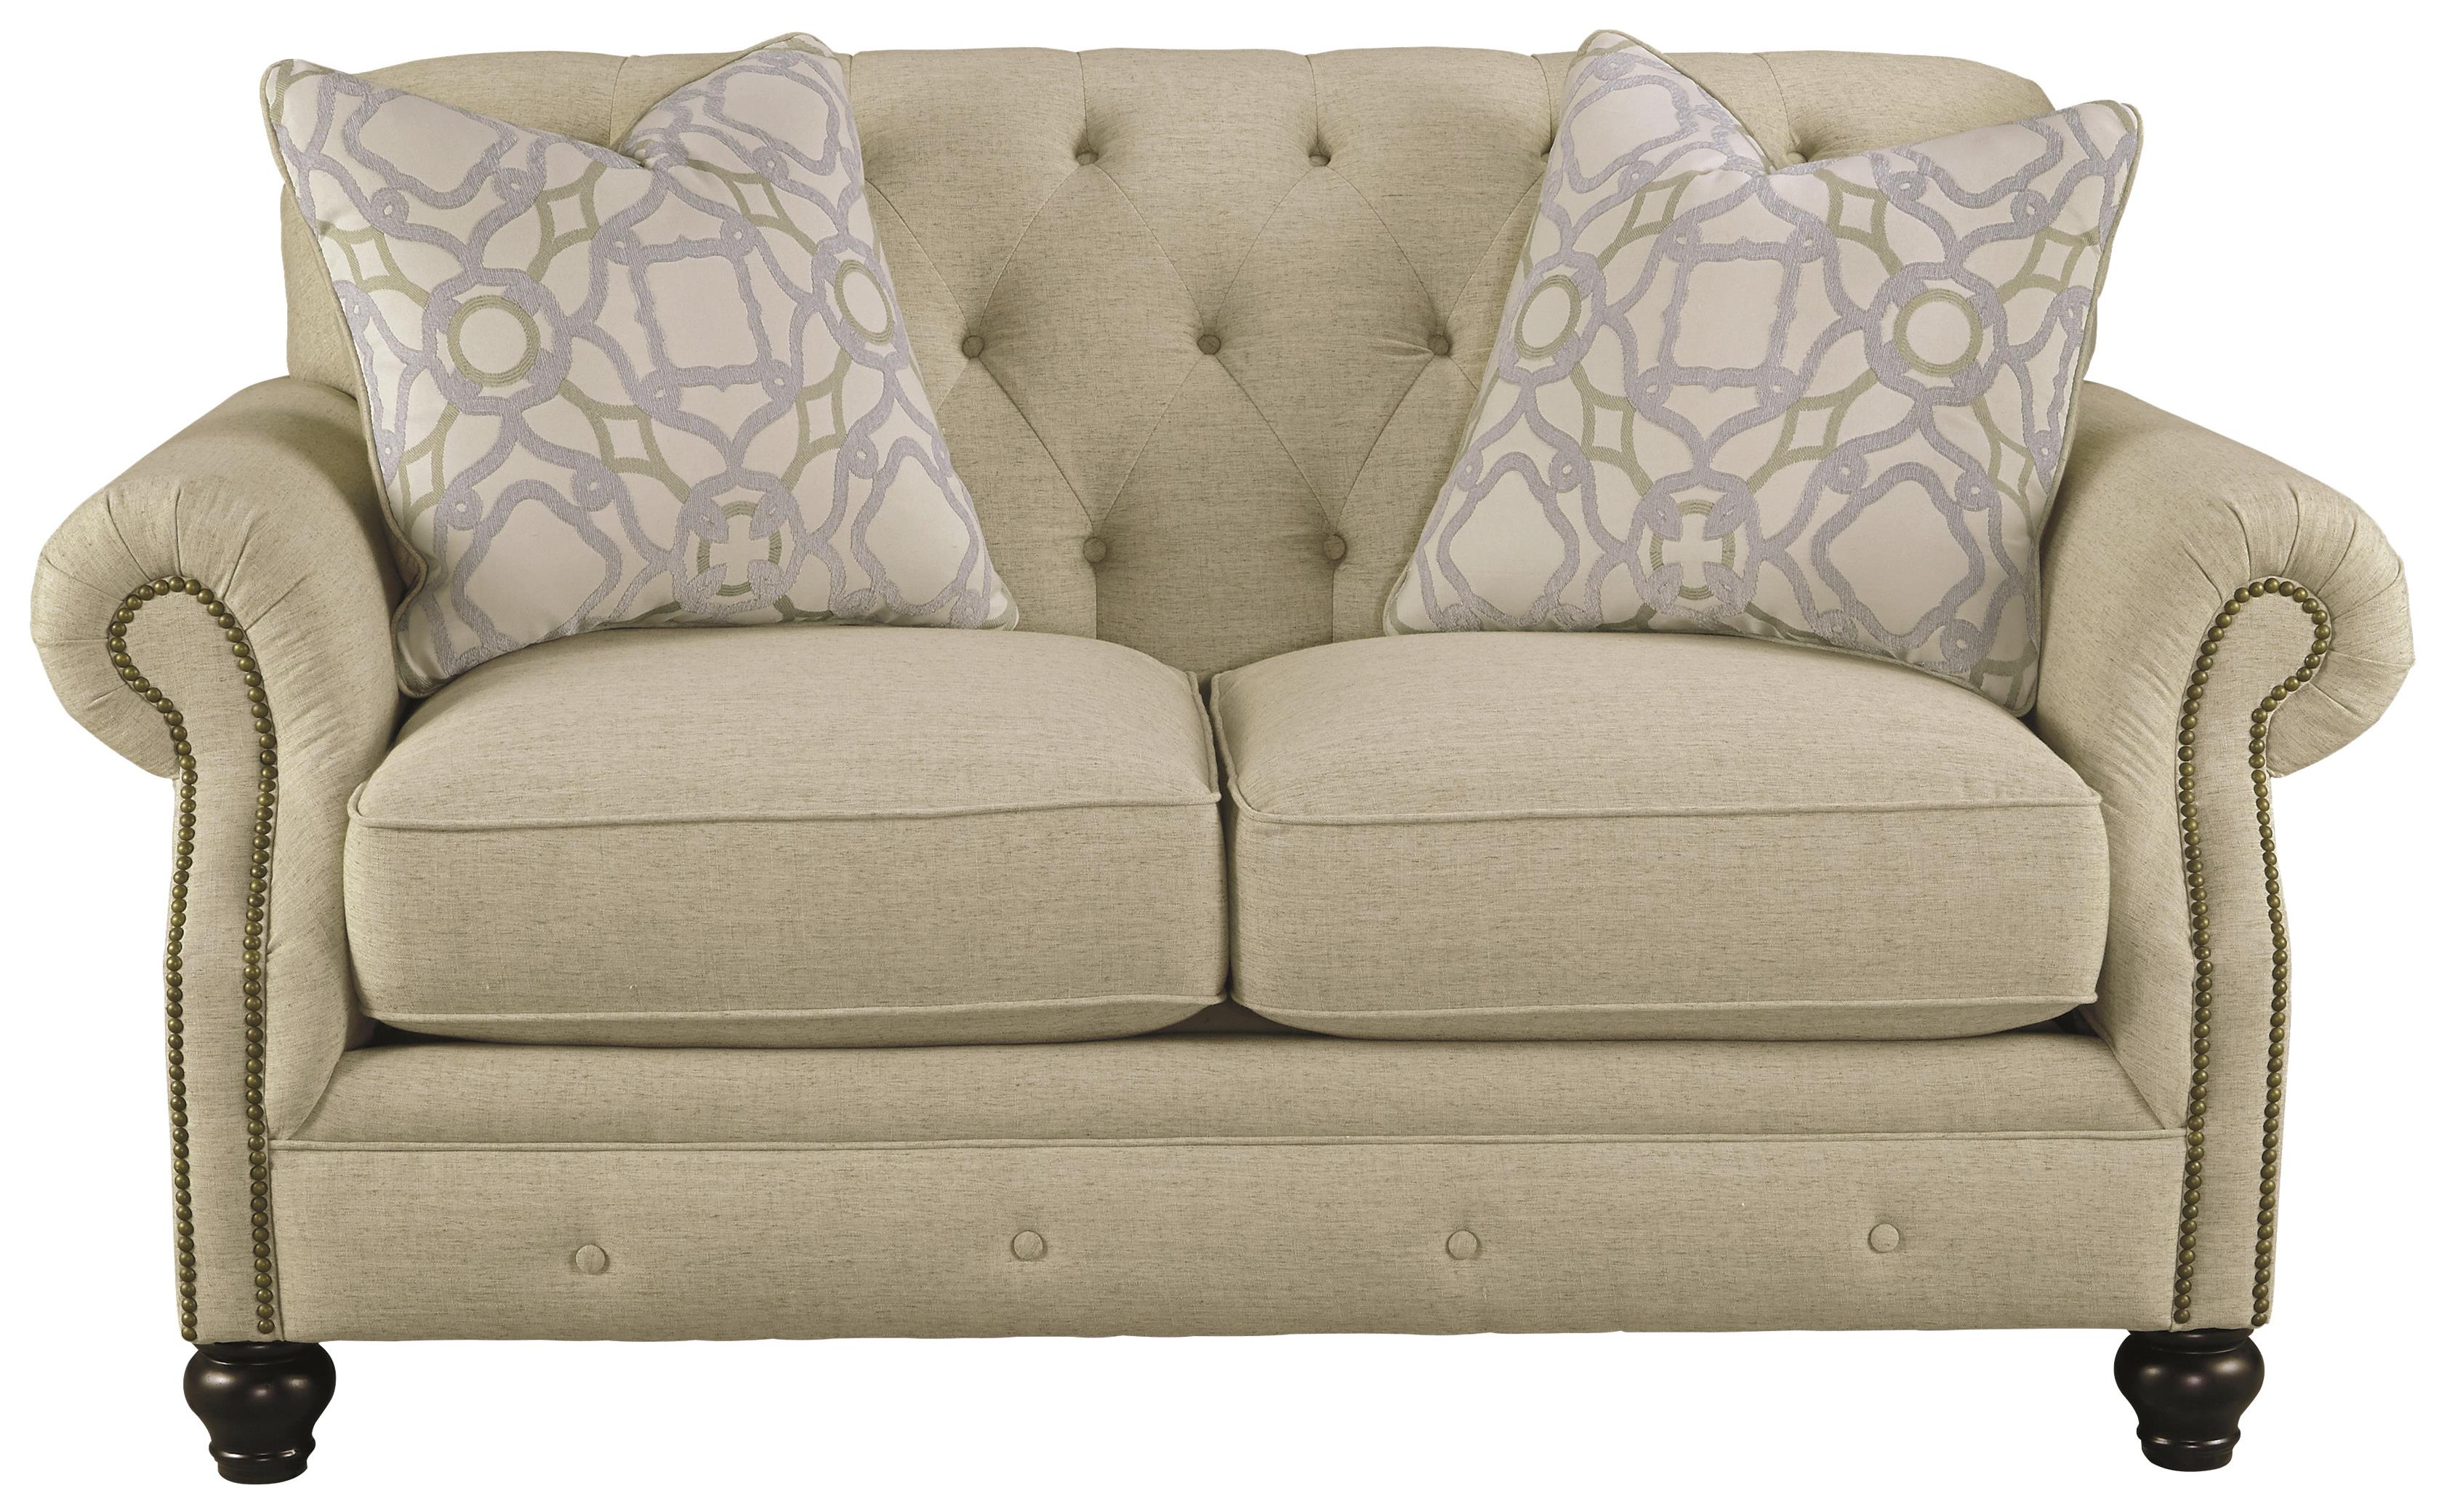 Signature Design by Ashley Kieran Loveseat - Item Number: 4400035